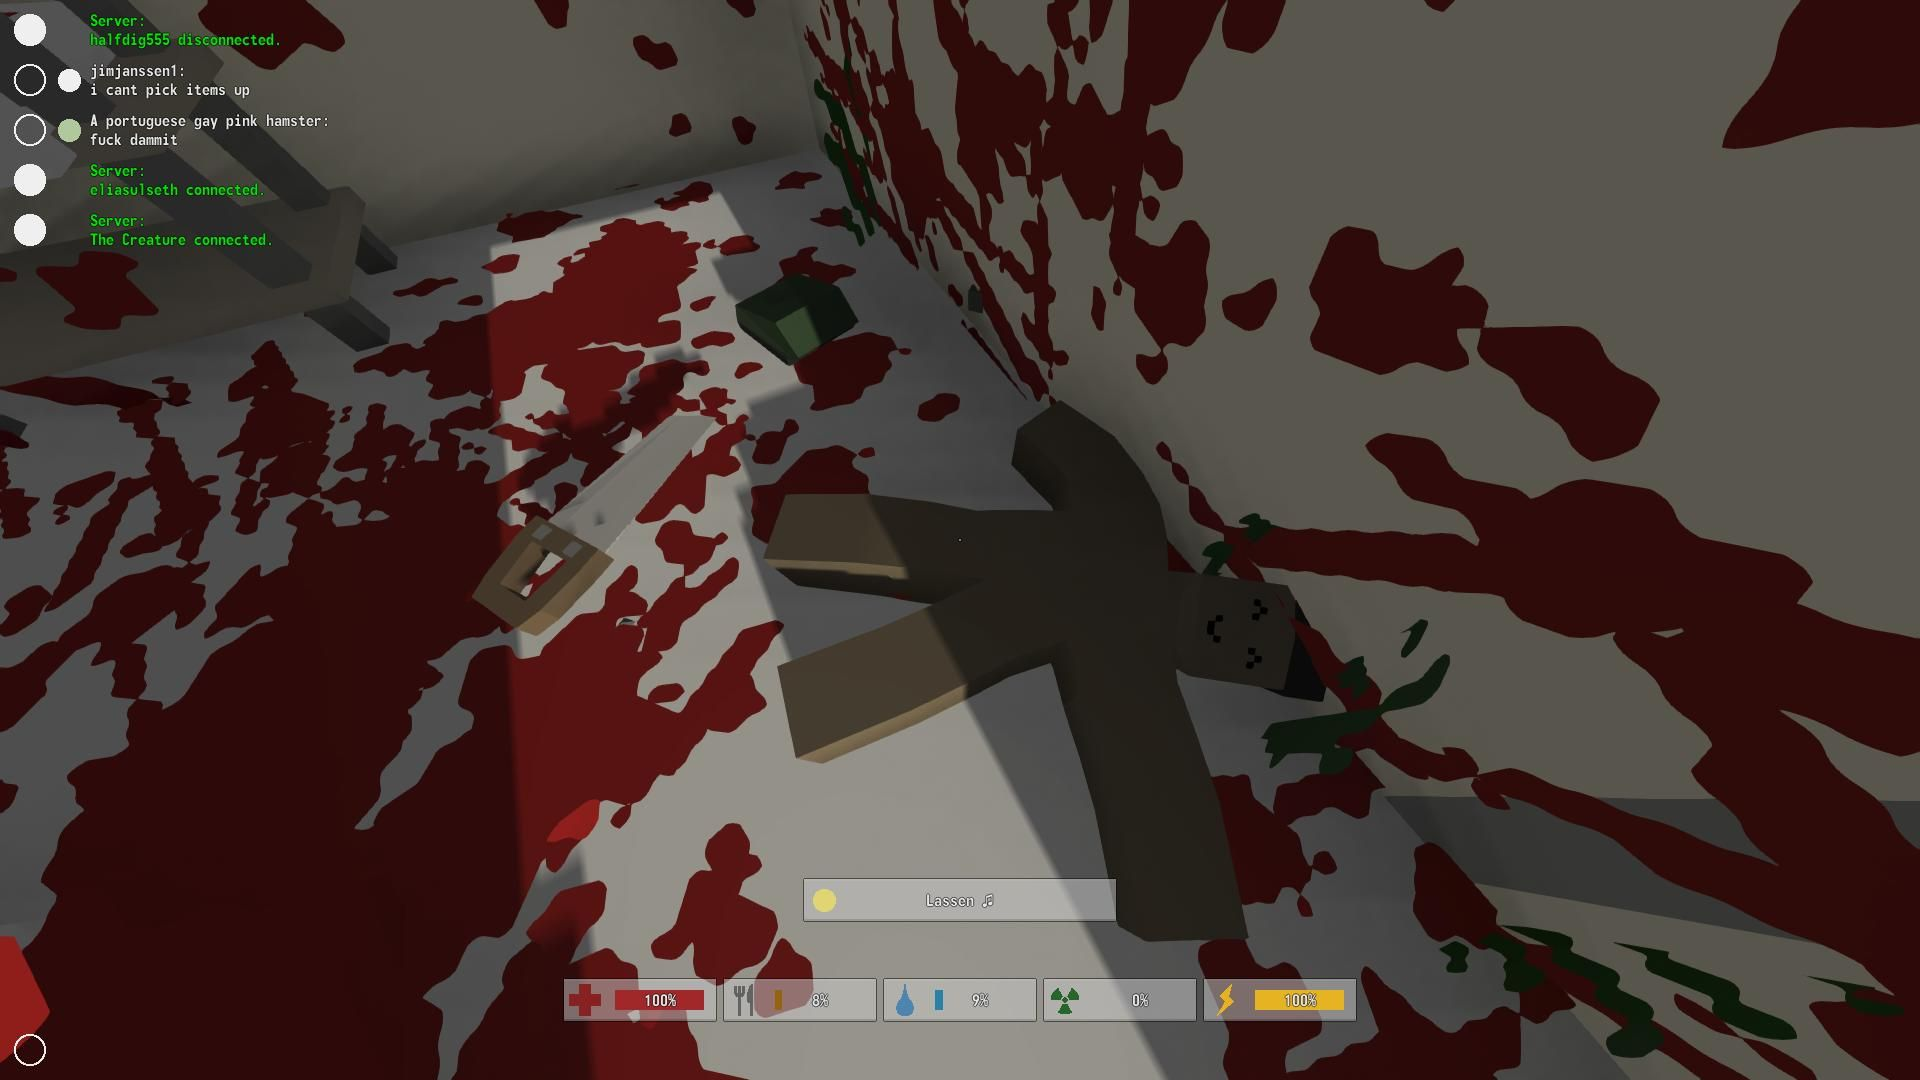 It can get bloody in the new unturned zombie survival game thats it can get bloody in the new unturned zombie survival game thats free to play on steam unturned check out my first unturned encounter here gumiabroncs Images